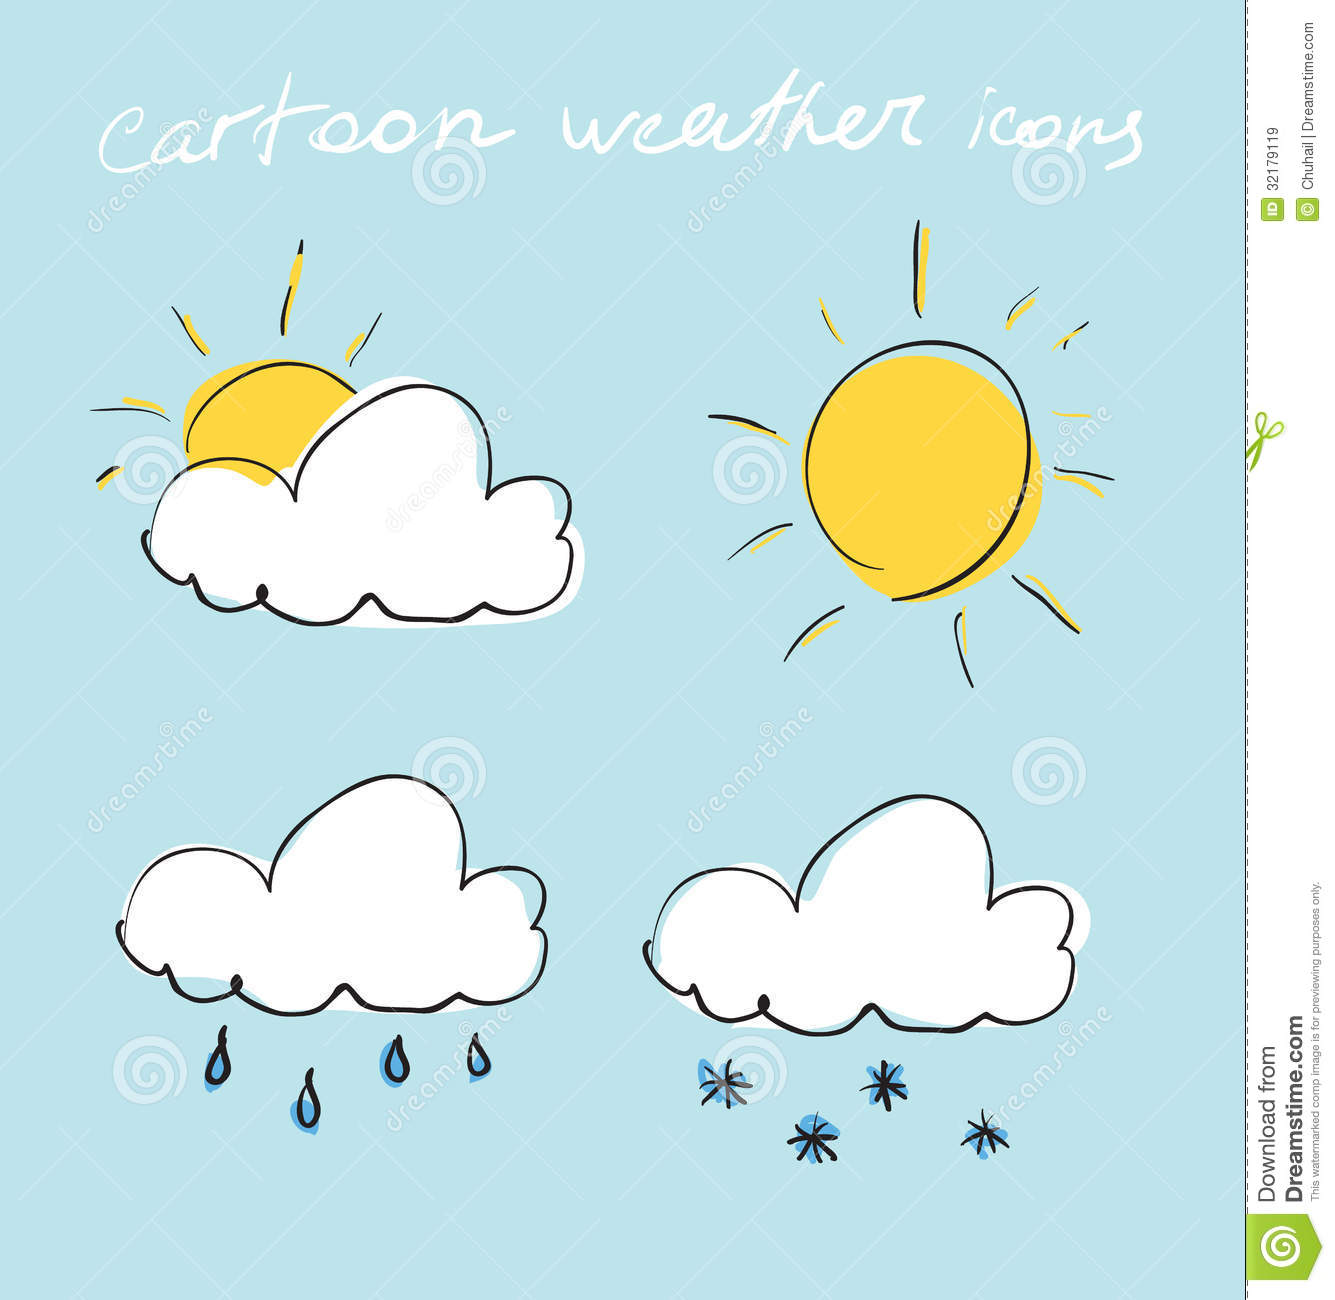 Cartoon Weather Icons Set Royalty Free Stock Images